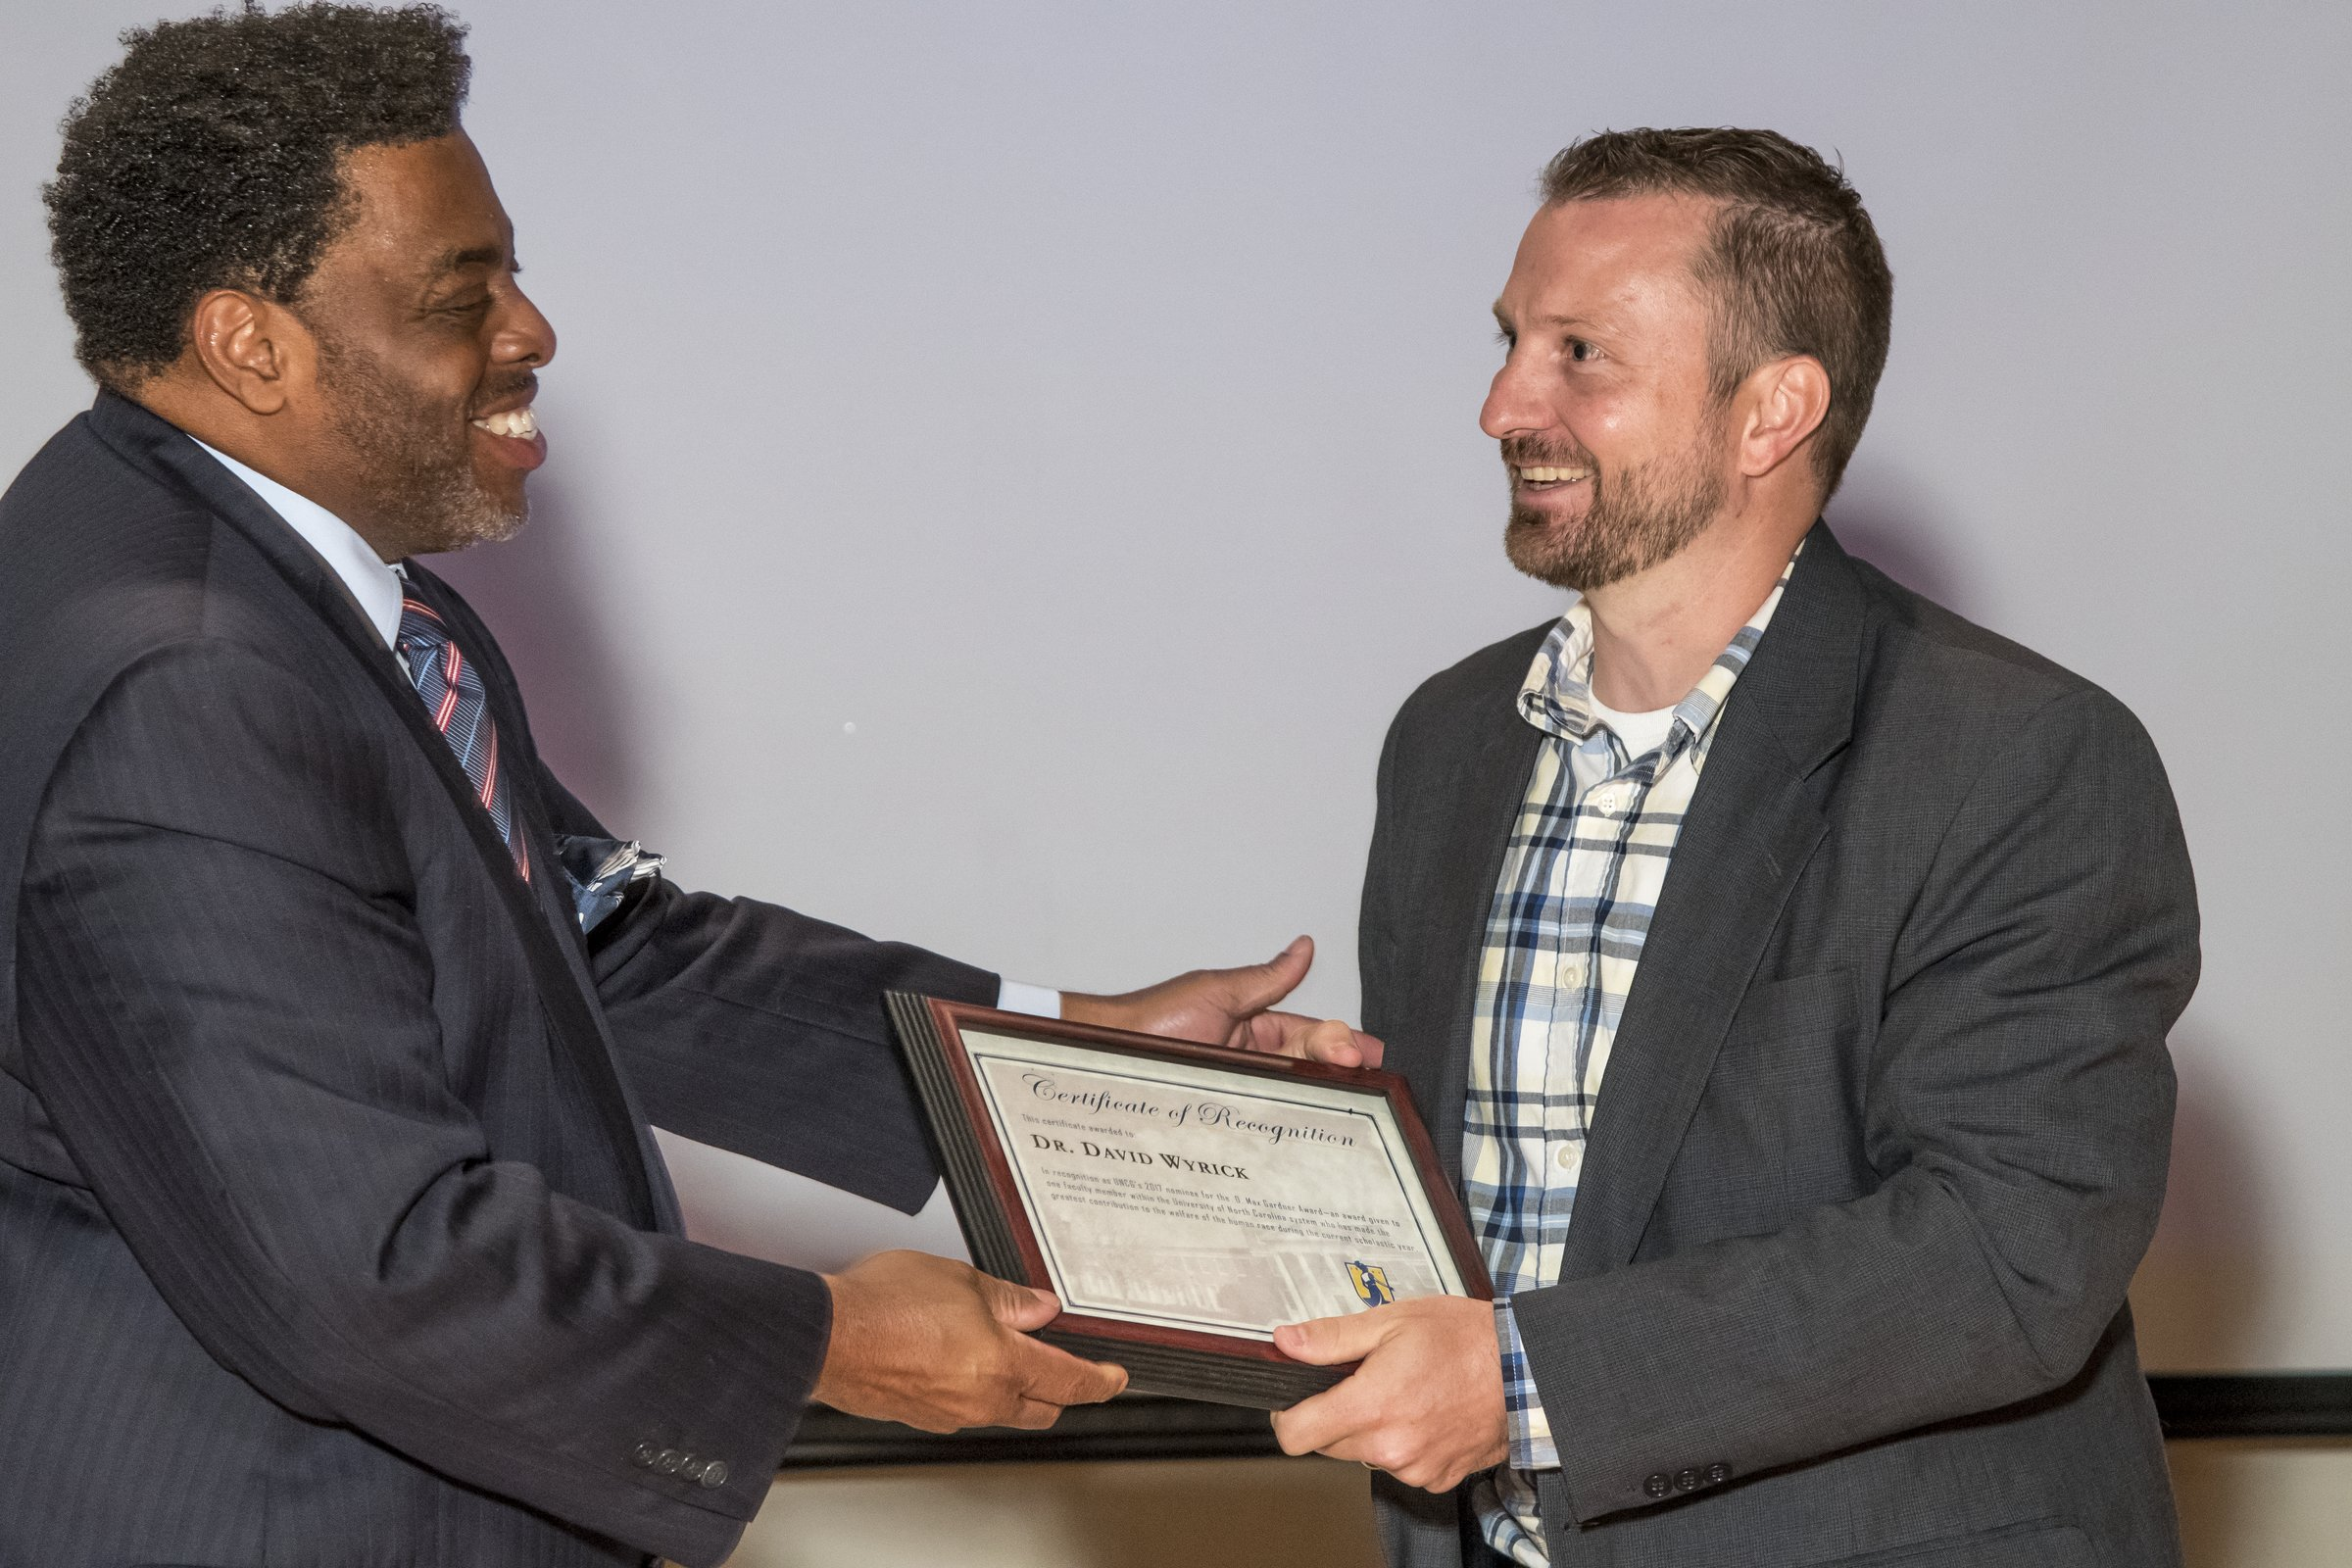 Photo of Chancellor Gilliam presenting an award to a male.